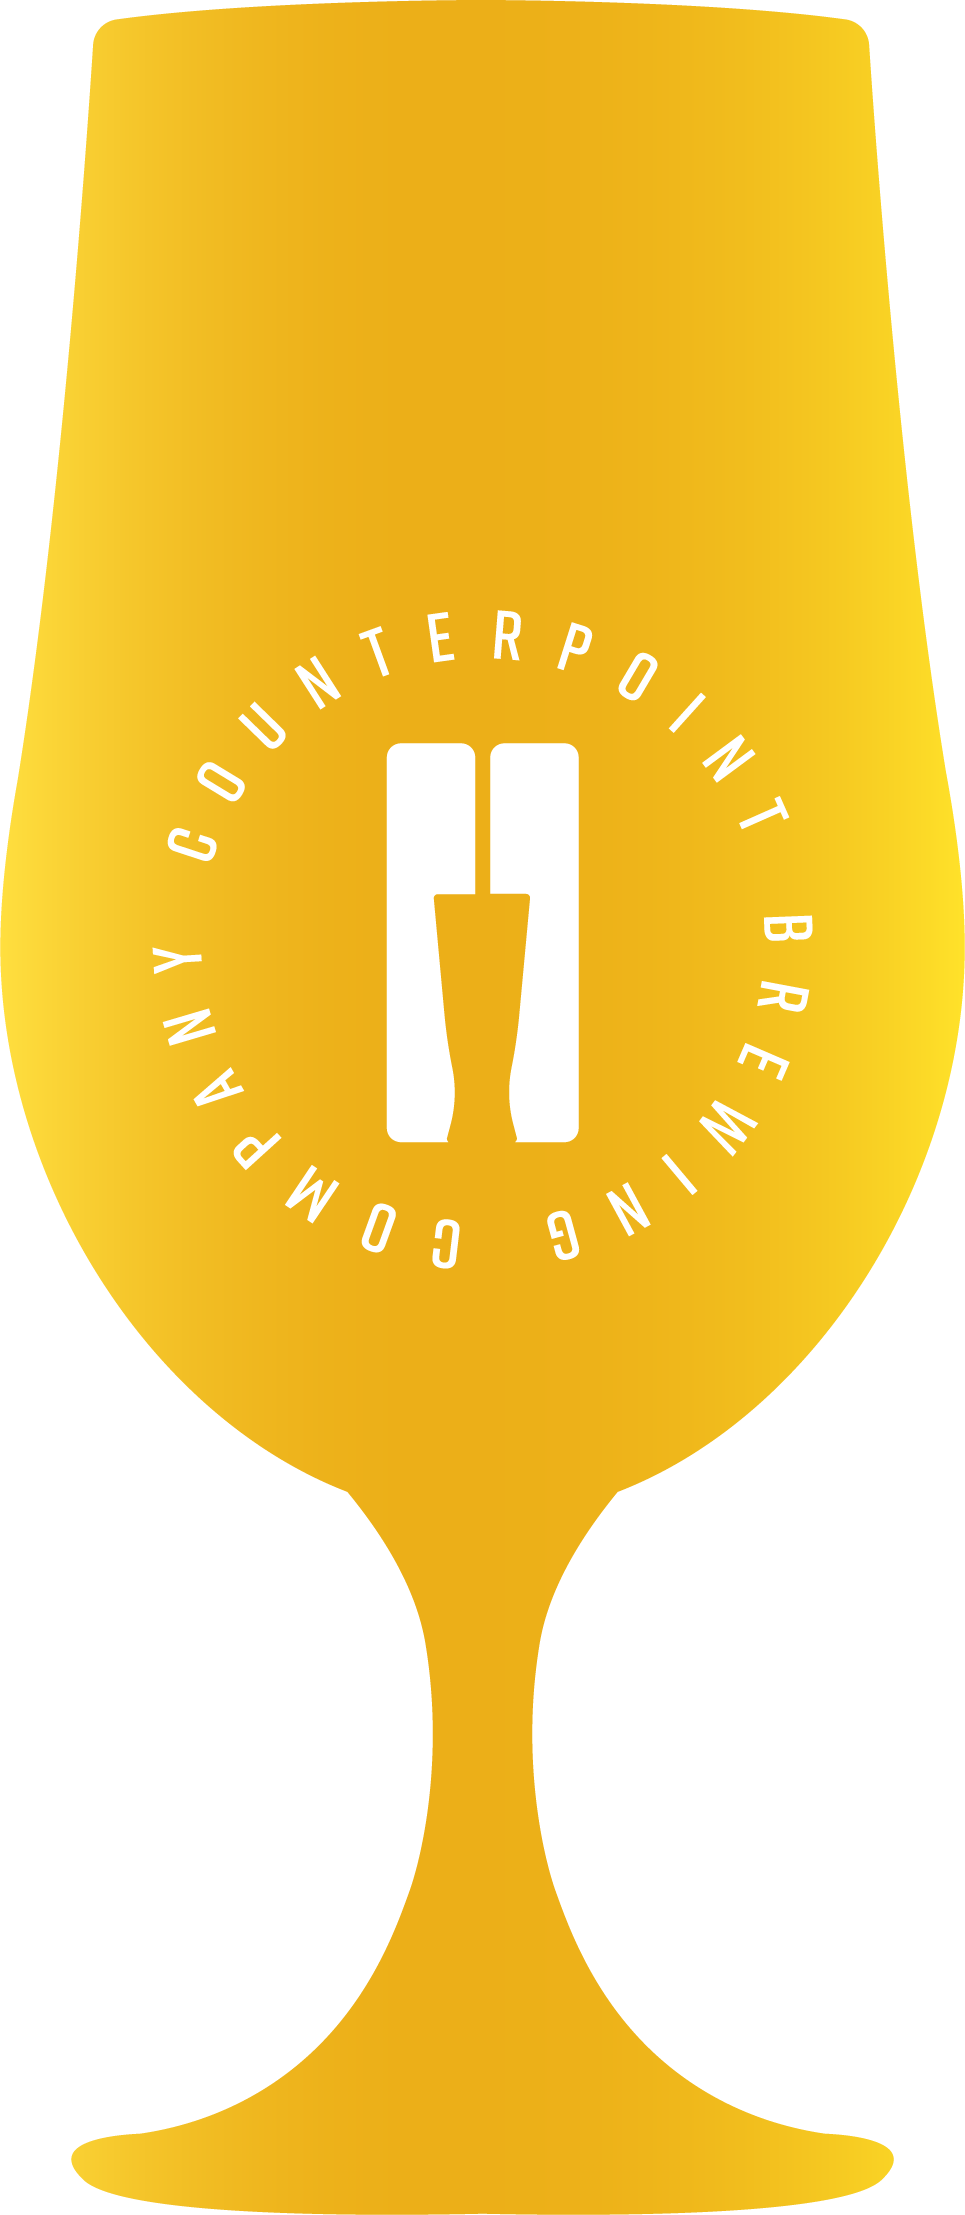 Icon shaped like a beer glass, demonstrating beer colour - Pale Gold